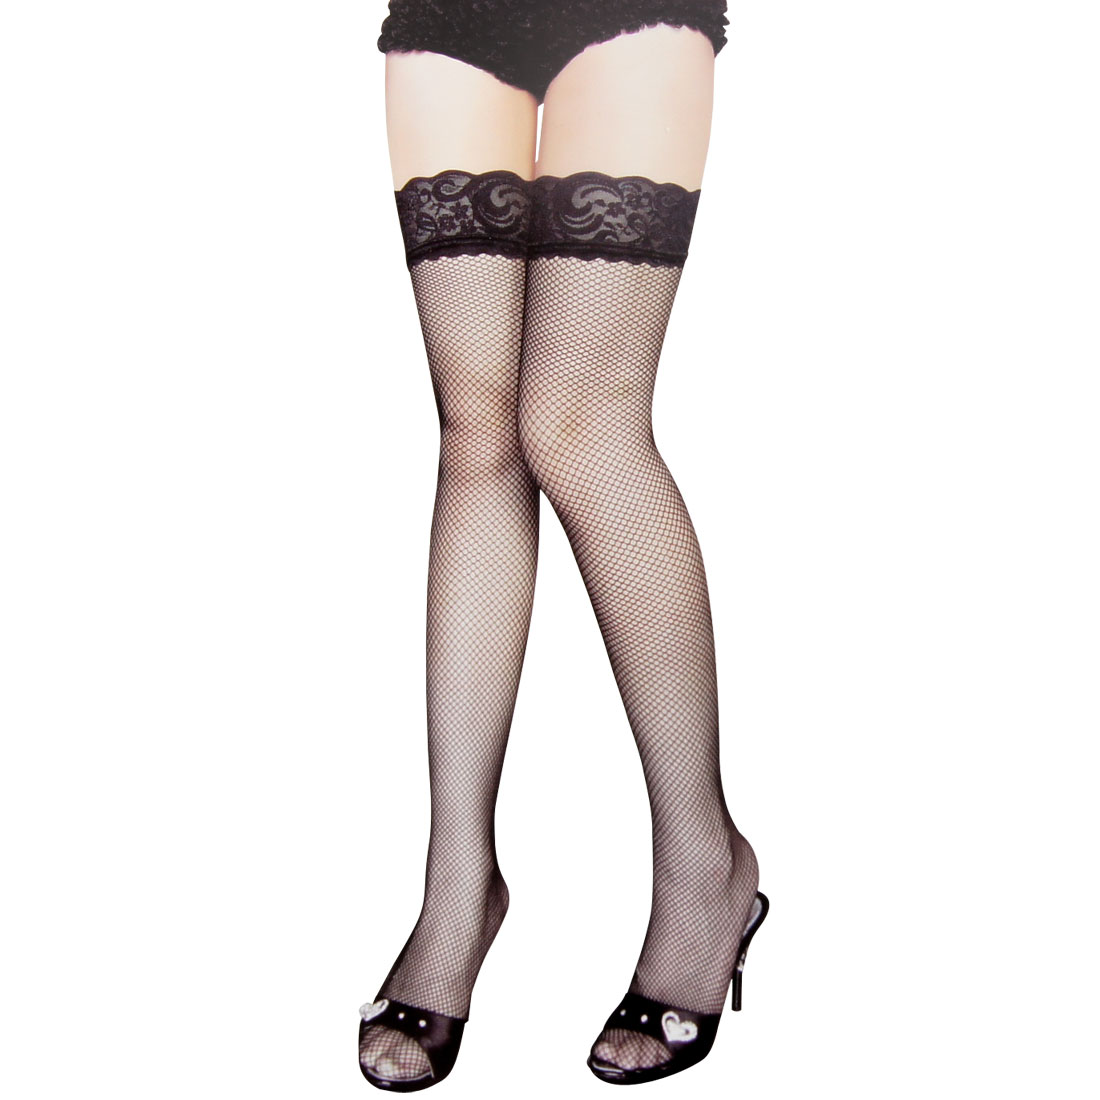 Lady Black Flower Lace Stretchy Thigh High Mesh Stockings